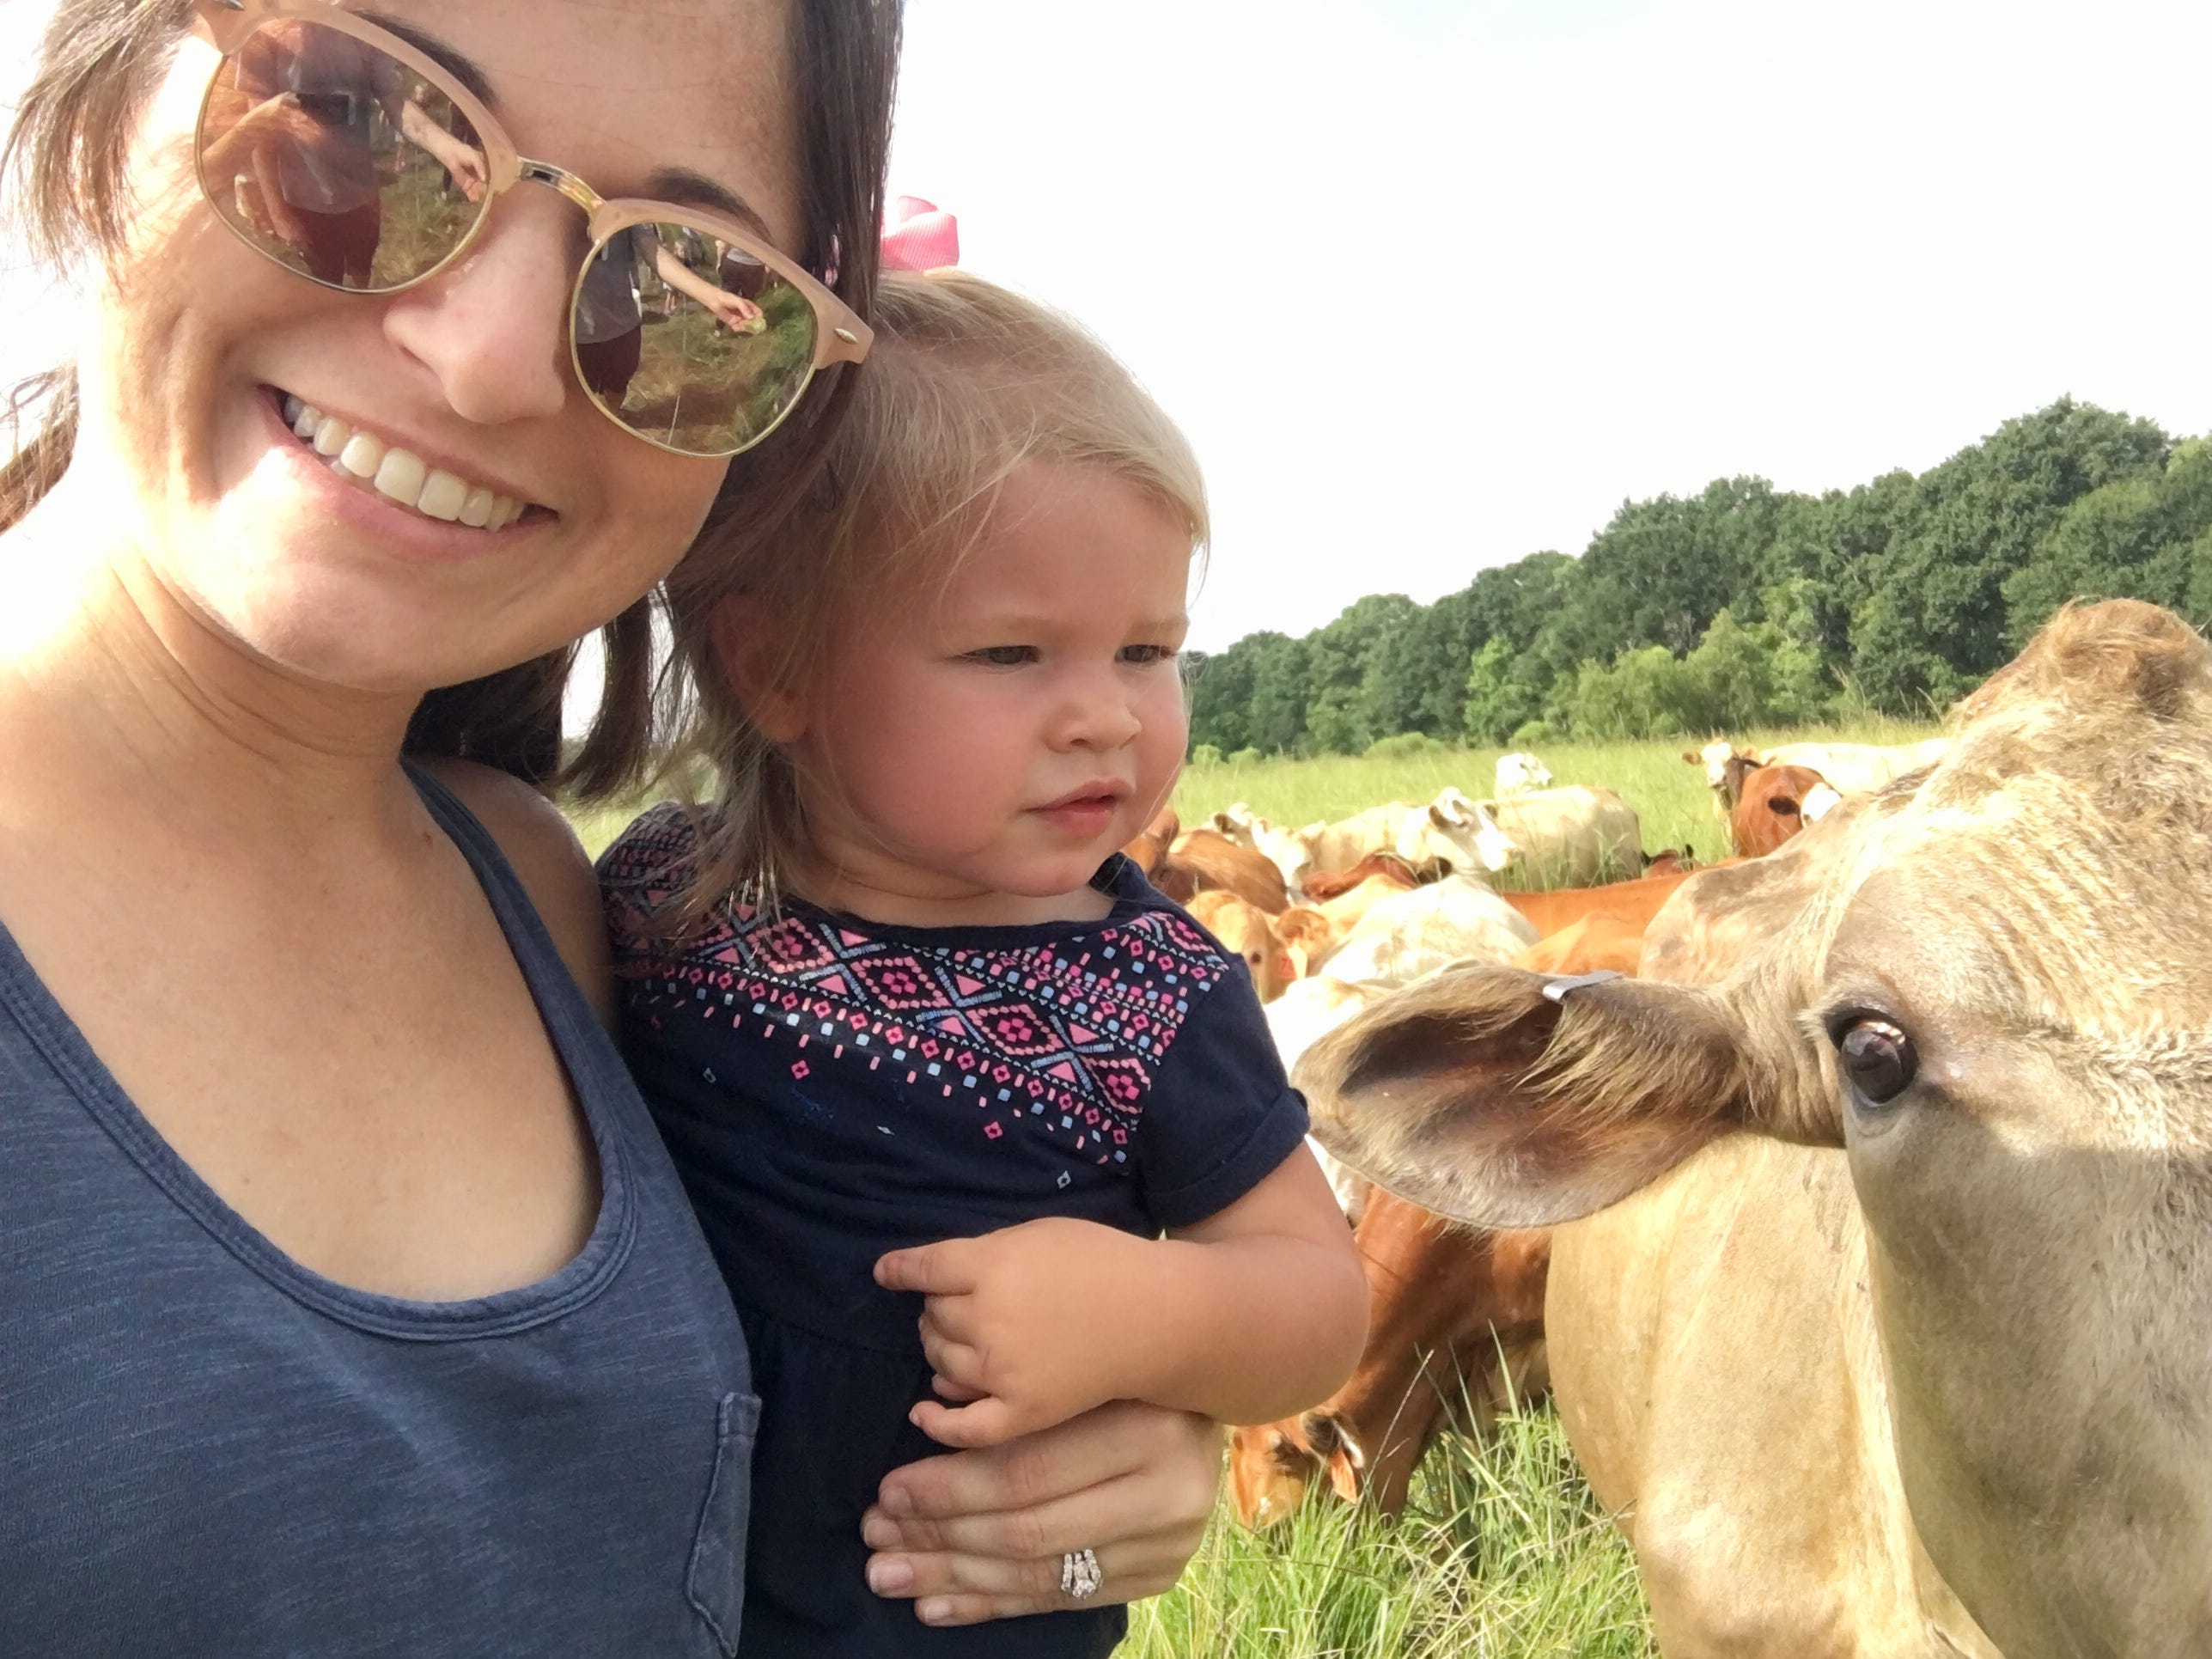 Travel and tourism reporter Leigh Guidry is visiting Acadiana farms with her husband Eric and daughters Marie, 1, and Avery, 4. They visited Brookshire Farm in Abbeville July 20, 2018.